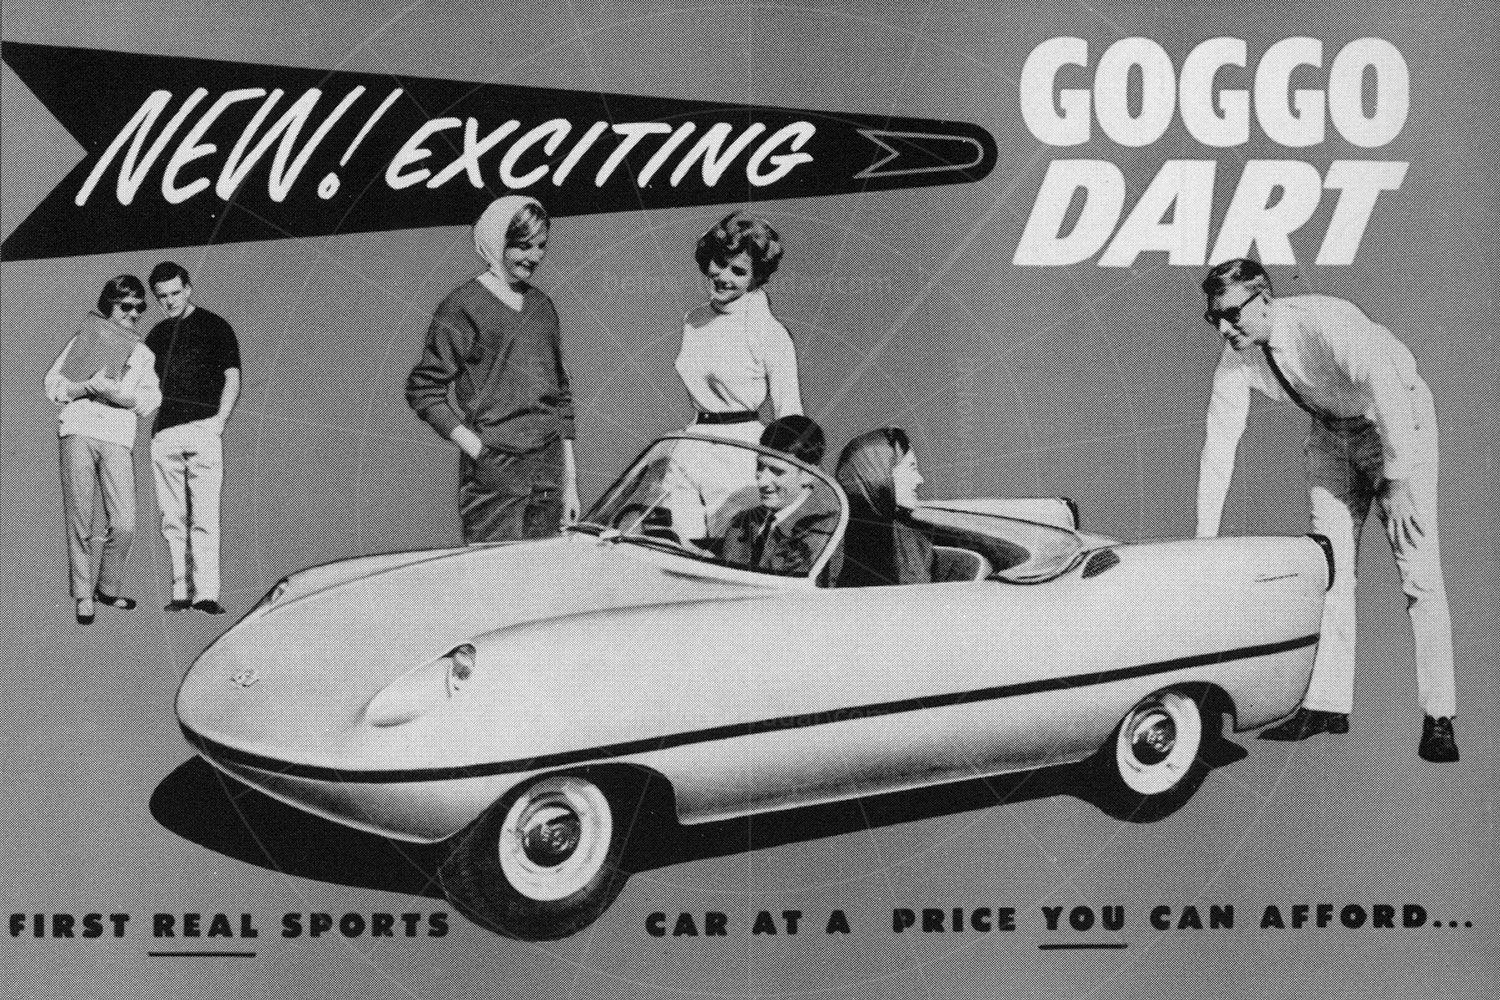 Goggomobil Dart advert